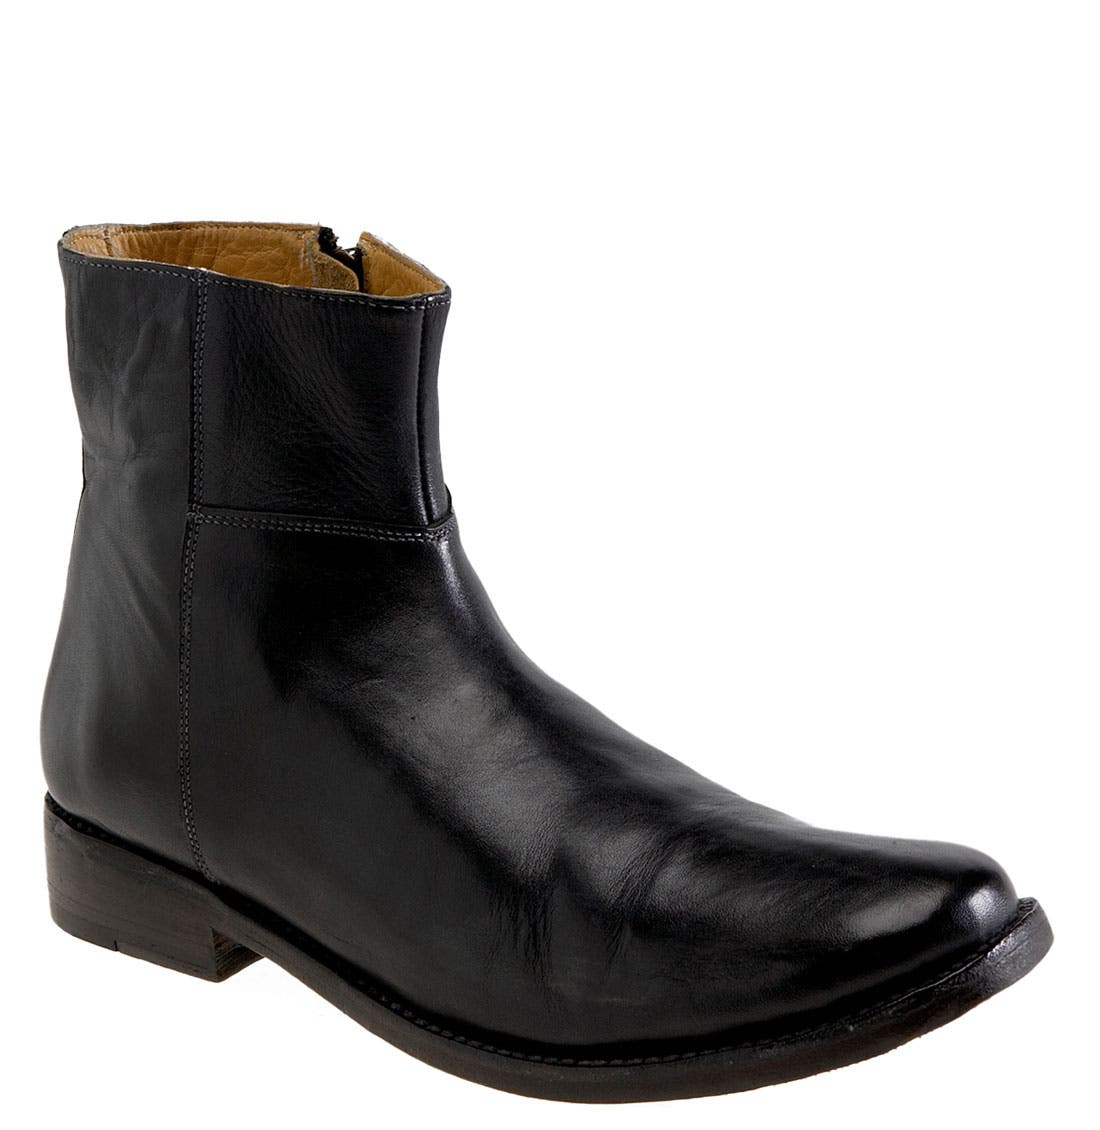 Main Image - Bed Stu 'Capricorn' Boot (Online Only)